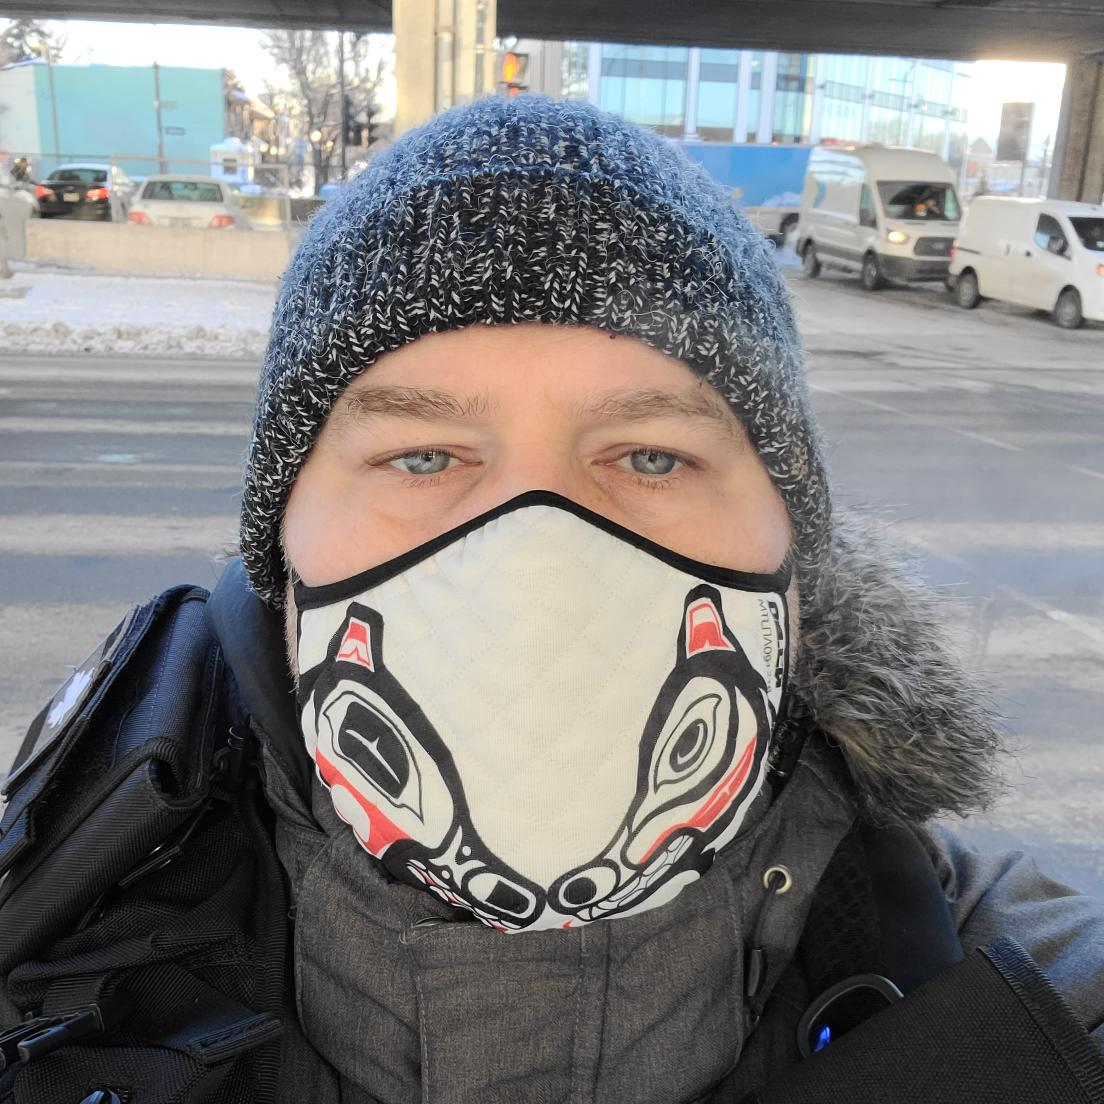 It's #Monday, people... Get your ass up and out into the (literal) cold world!! #MaskUp #WearAMask #COVID19